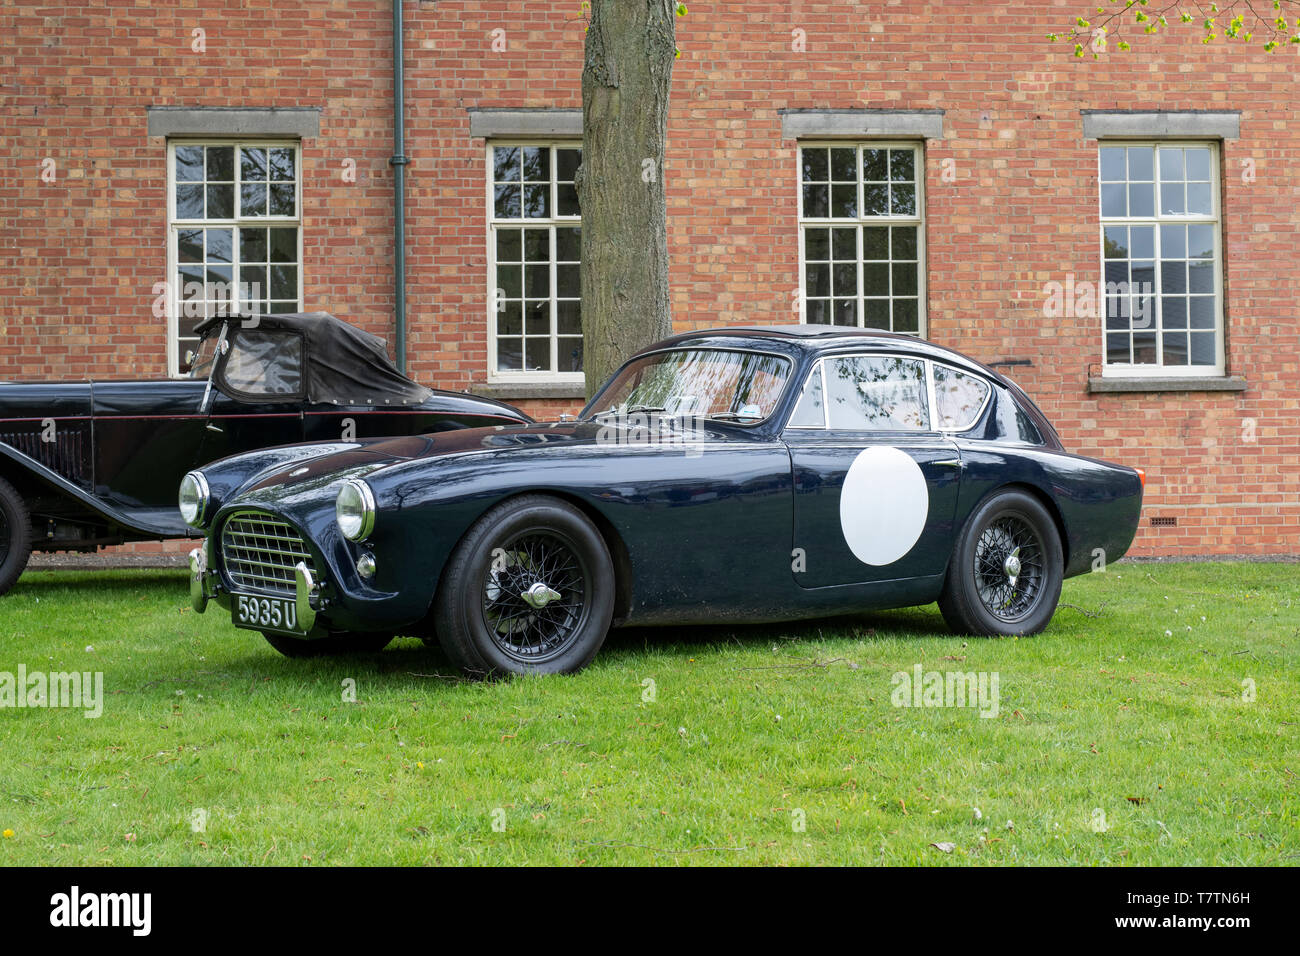 1957 AC Aceca car at Bicester Heritage centre 'Drive it day'. Bicester, Oxfordshire, England - Stock Image